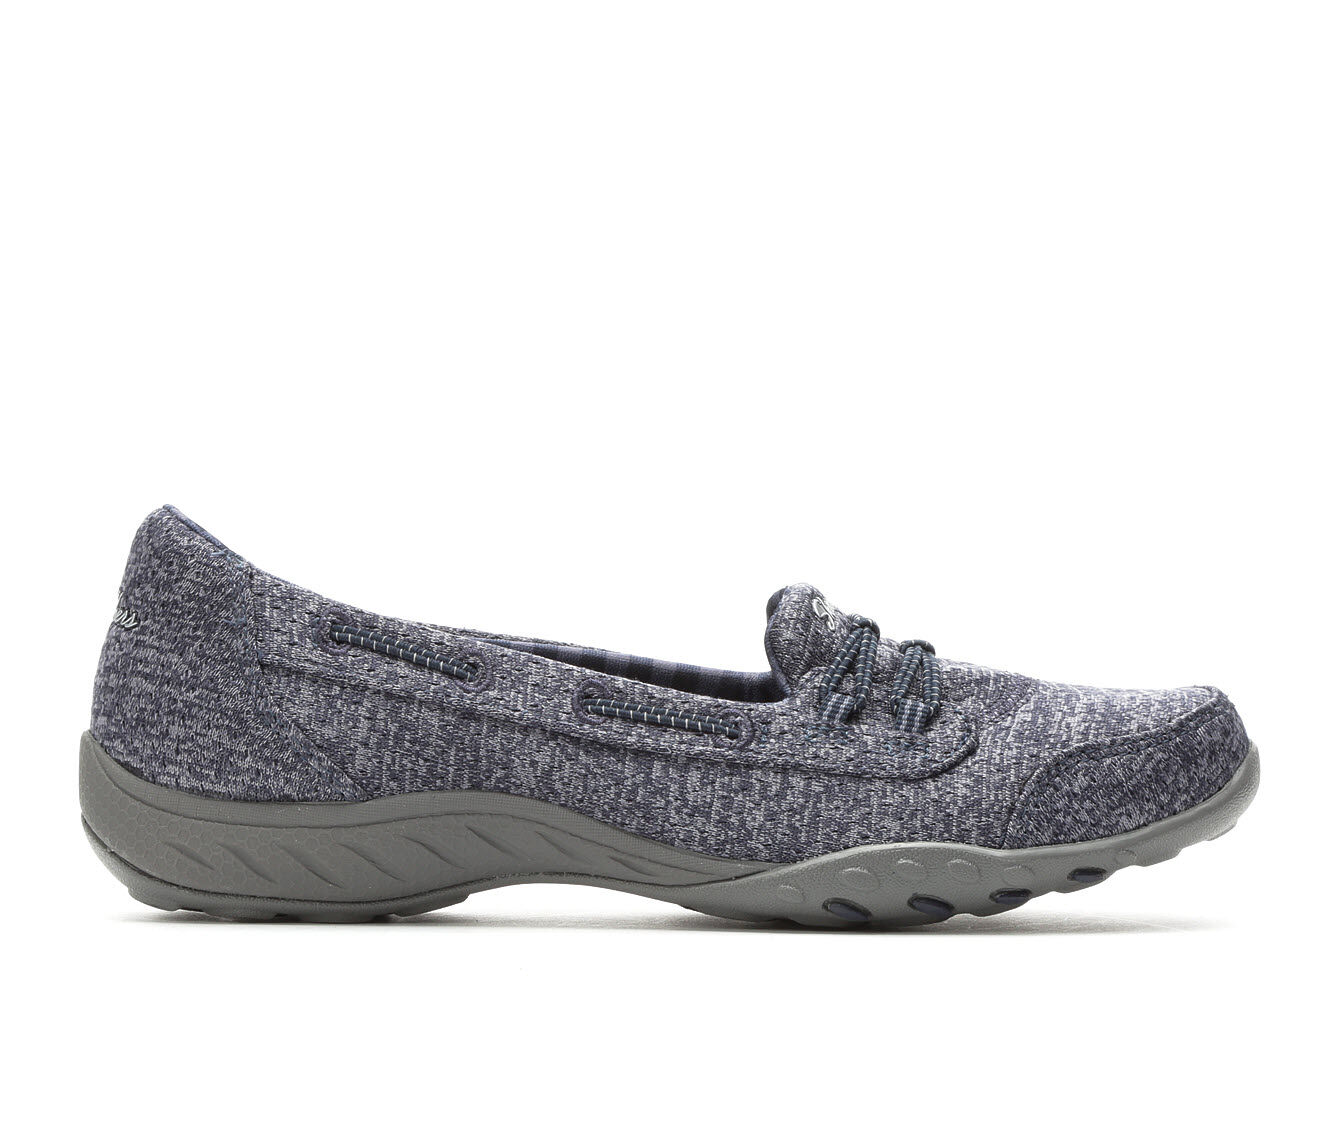 Women's Skechers Good Influence 23839 Slip-On Shoes Navy